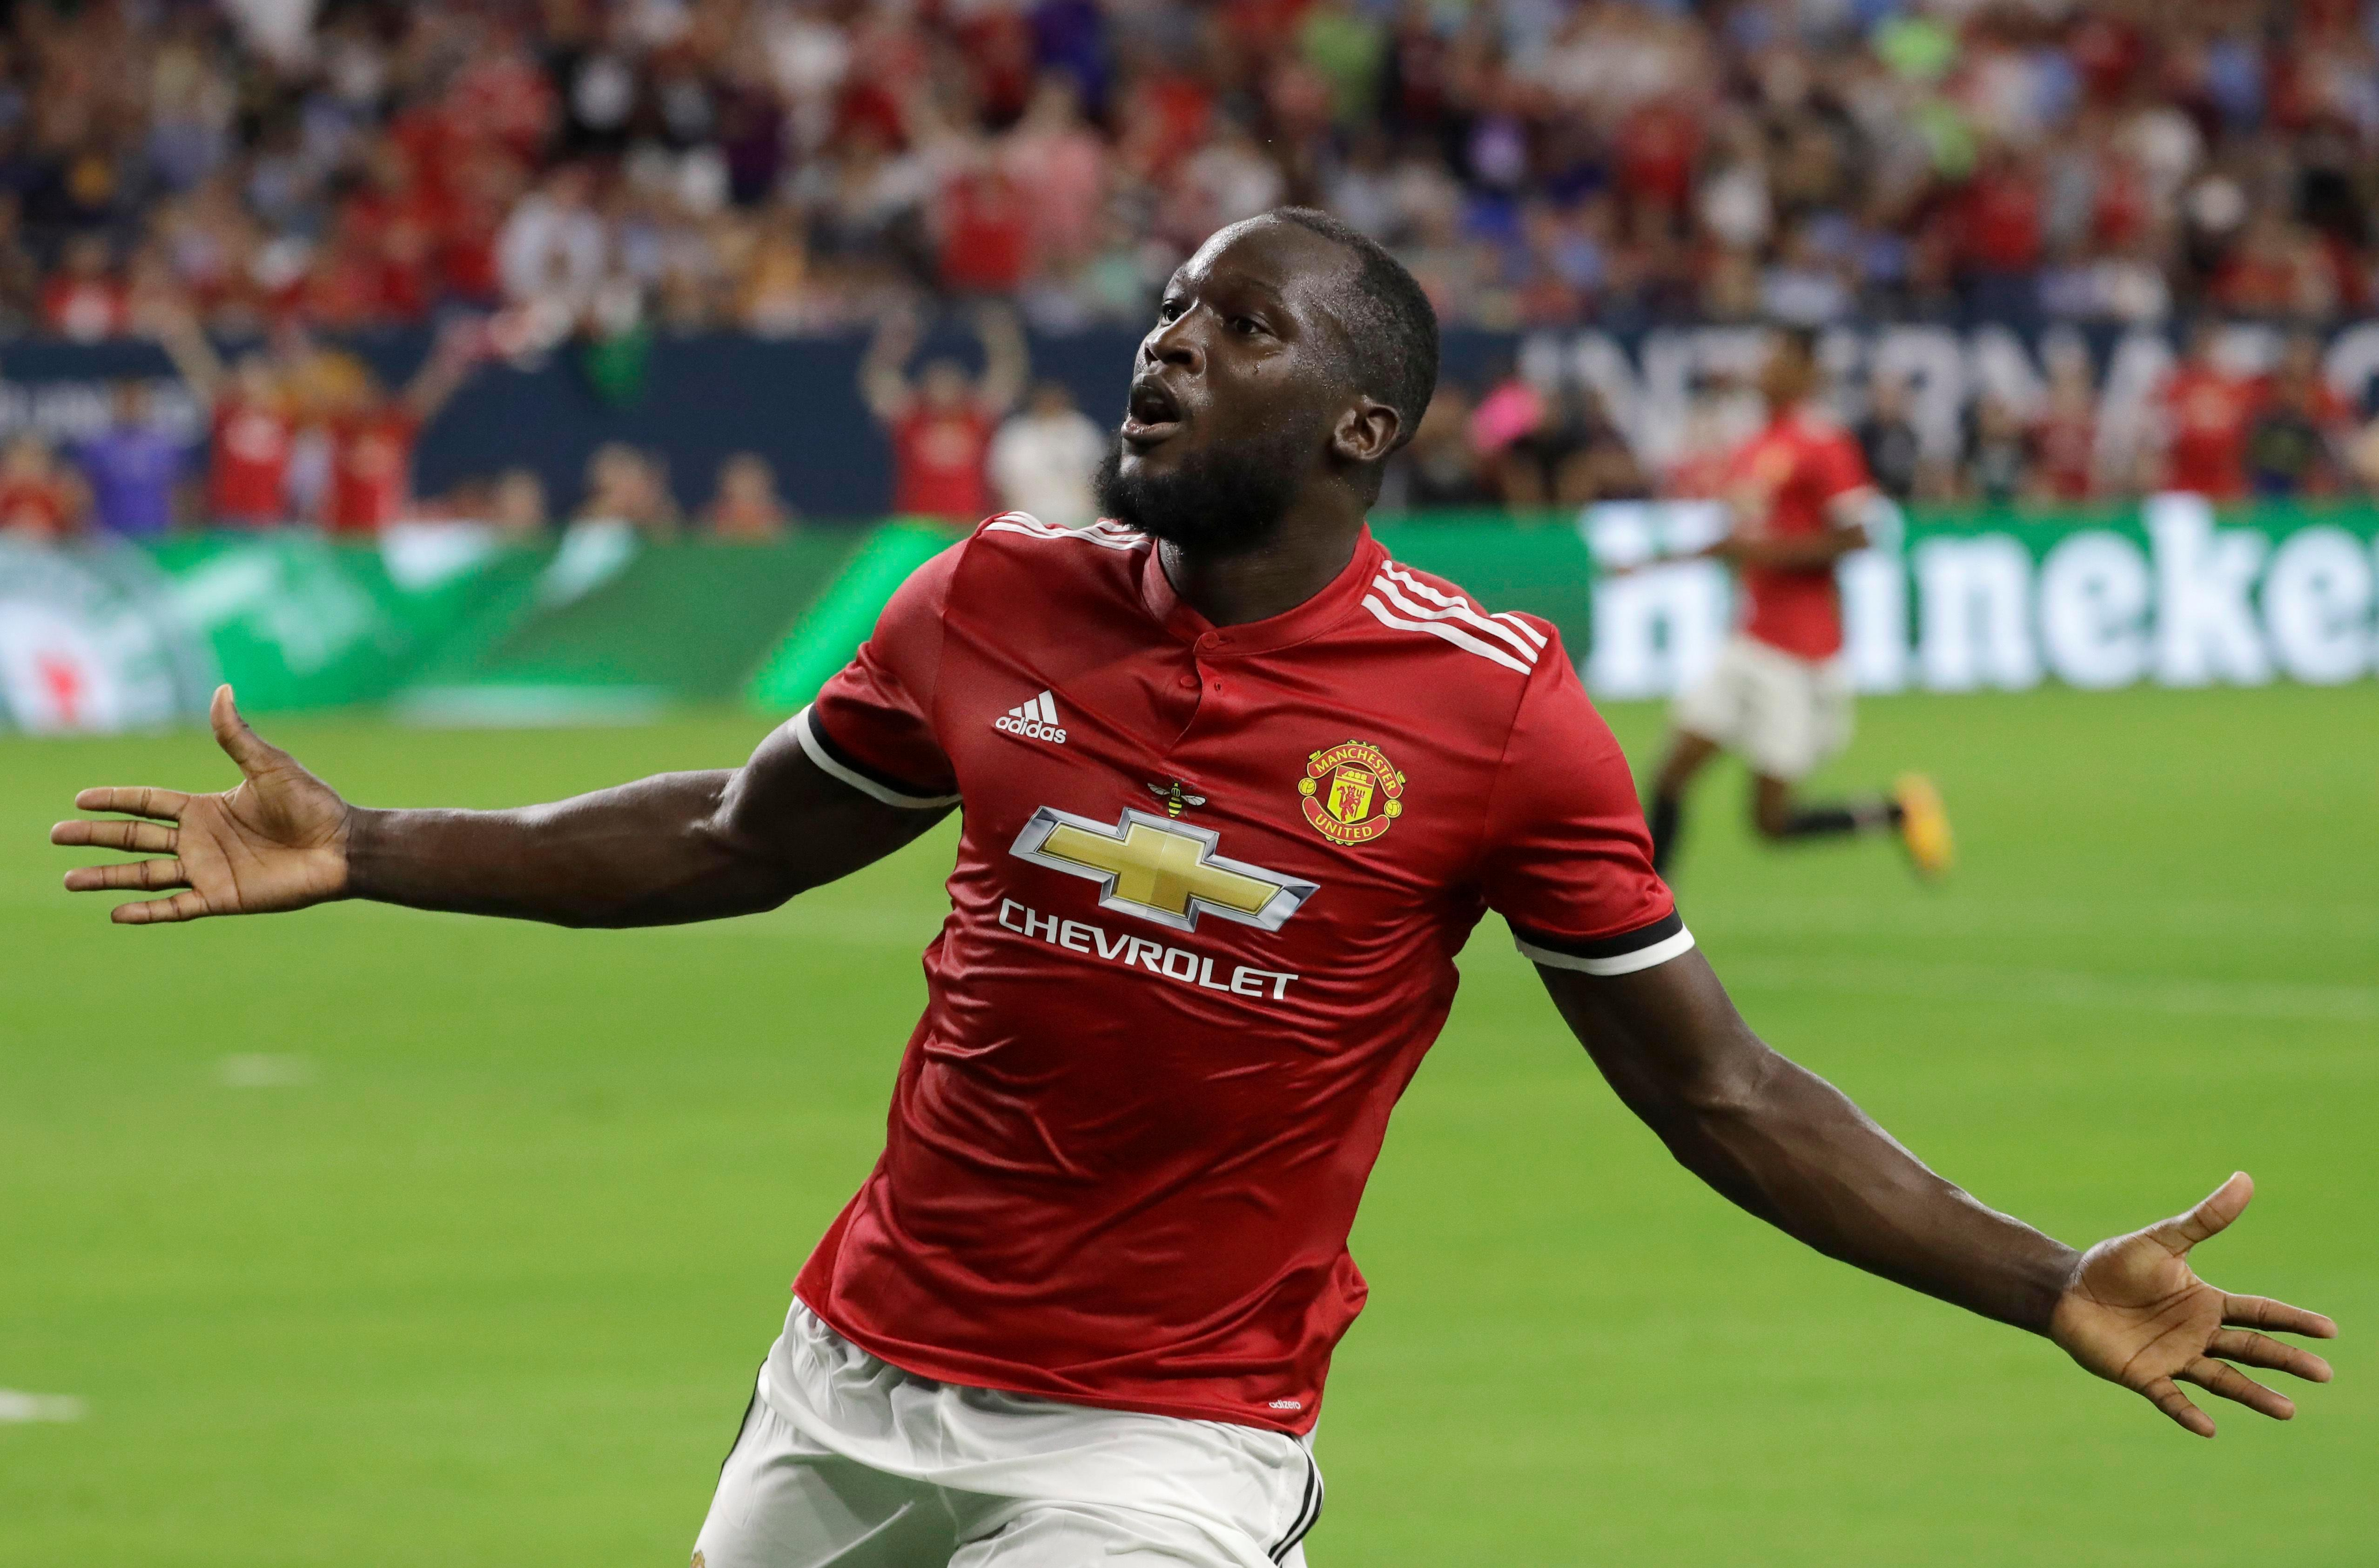 Lukaku was able to roll in his second United goal by the blunder